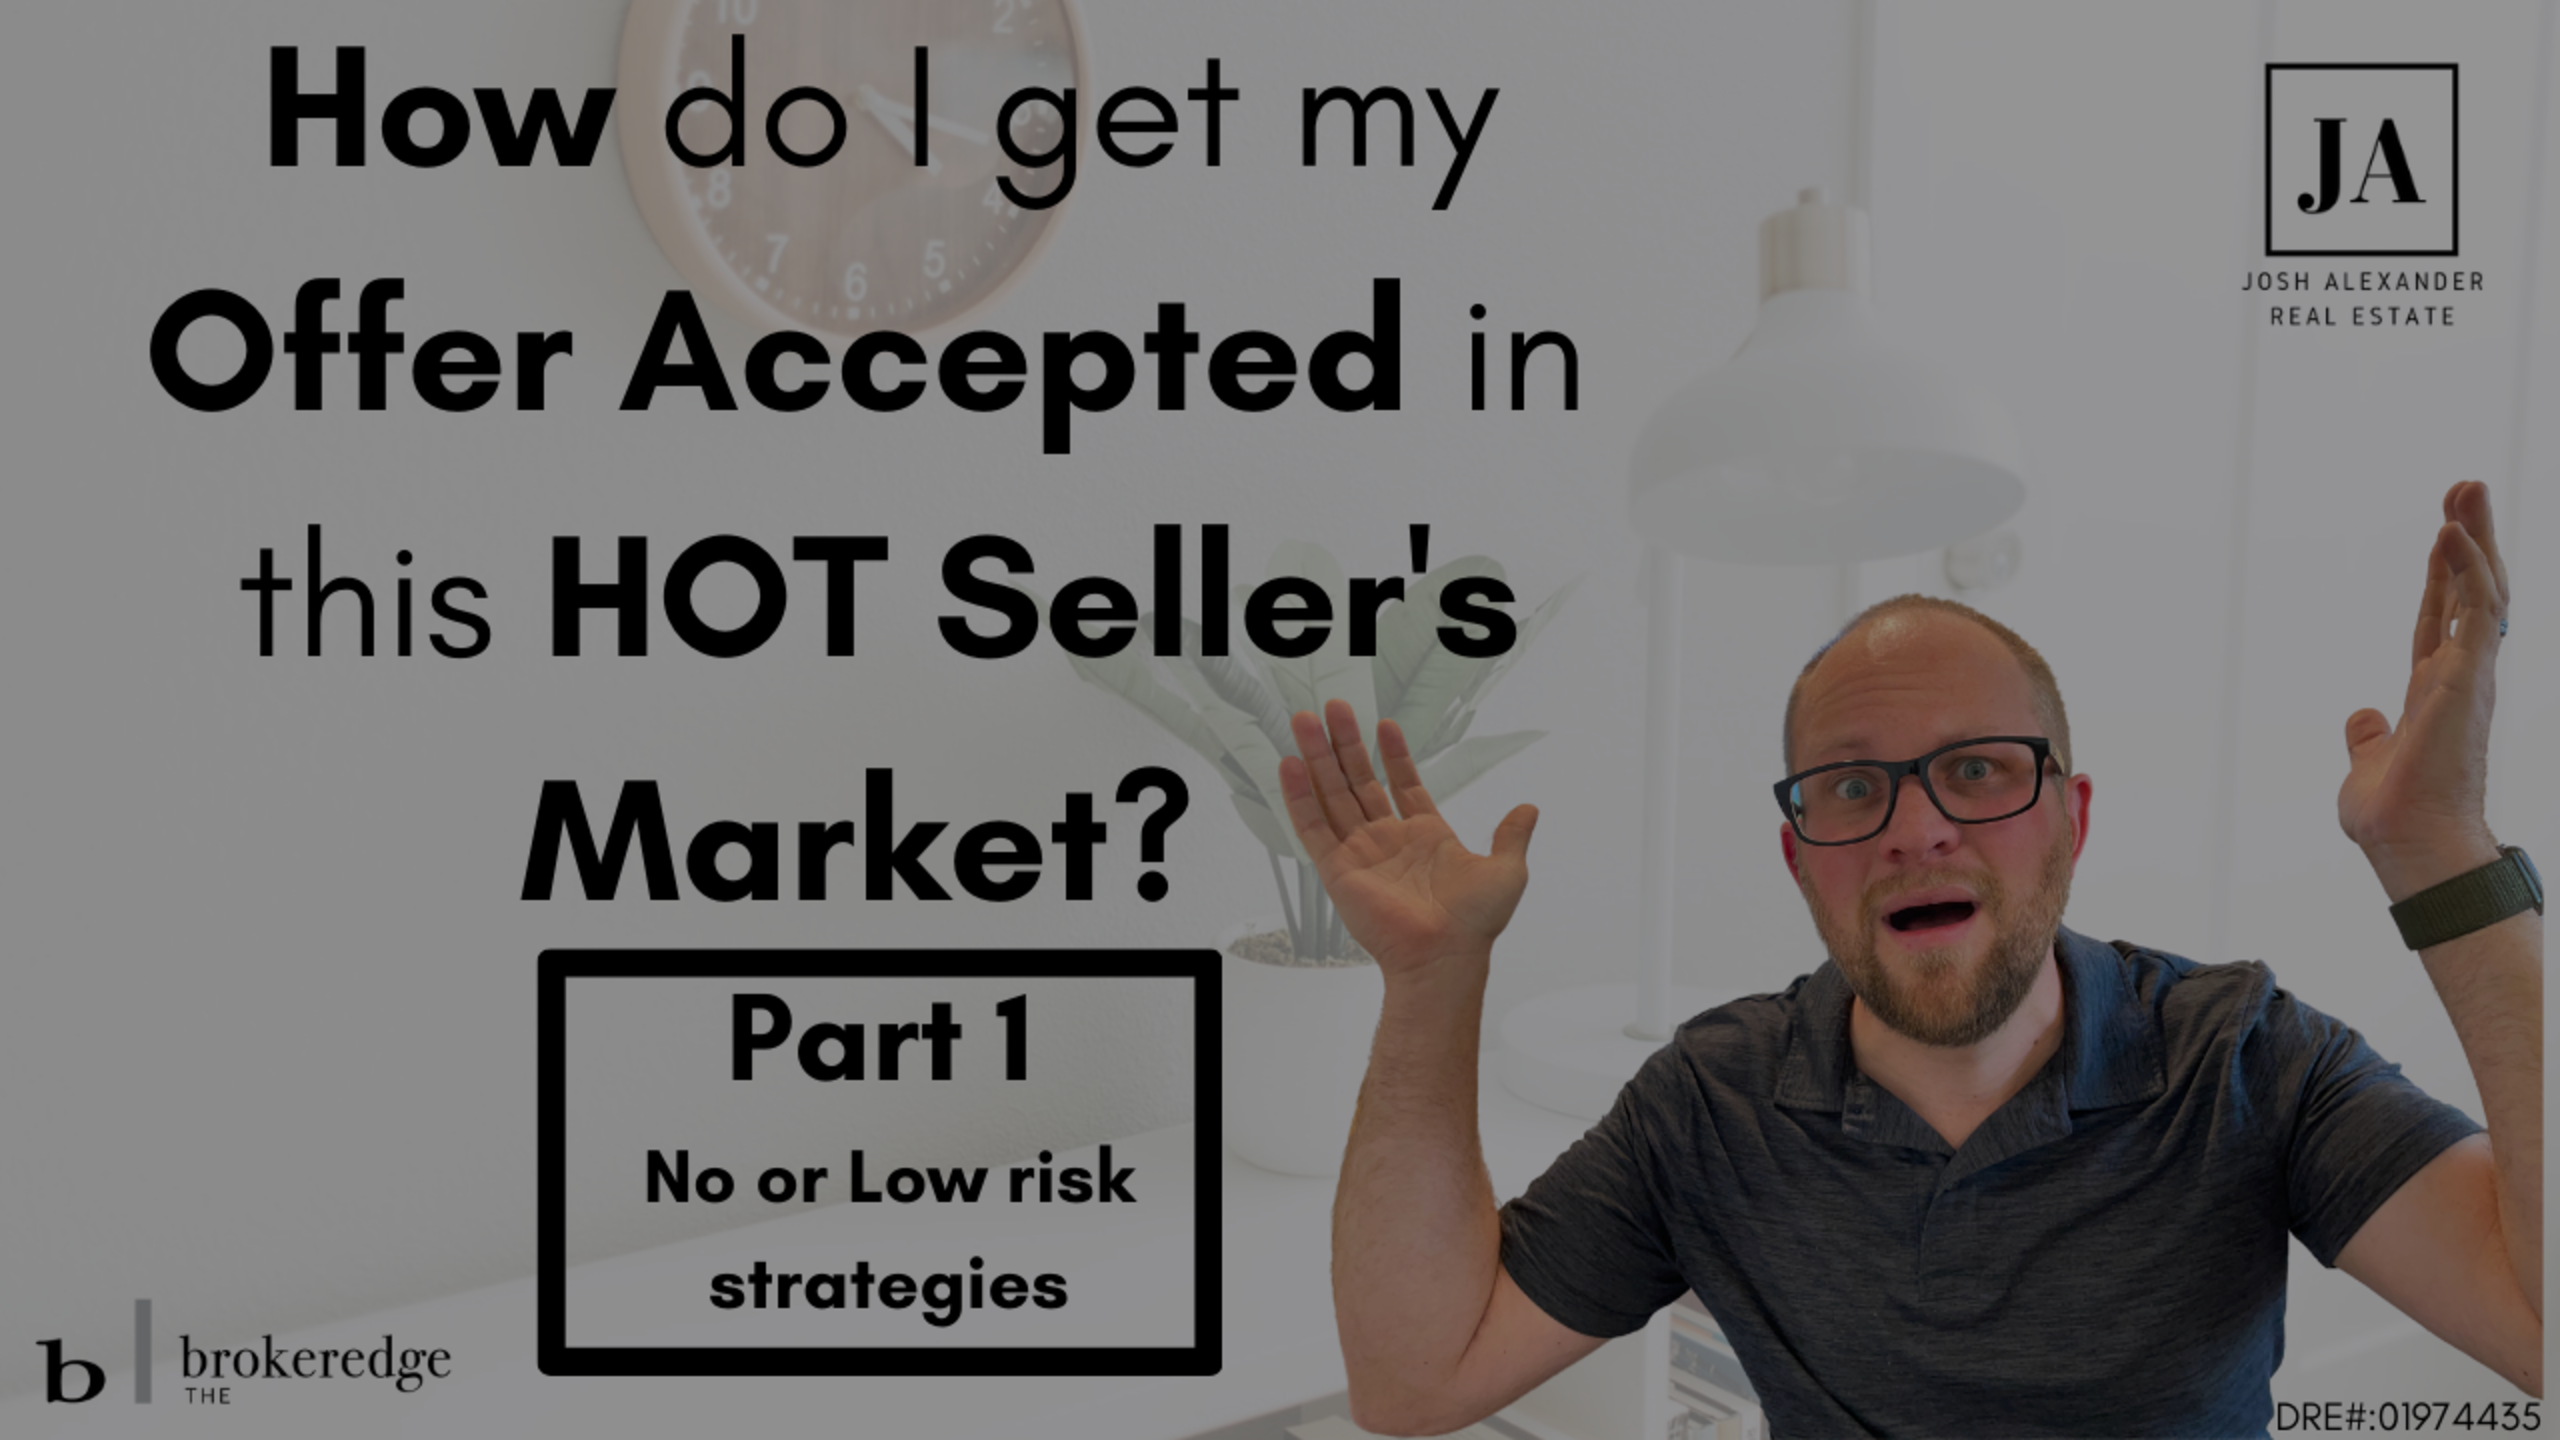 How to get an offer accepted in this HOT Seller's Market – PART 1